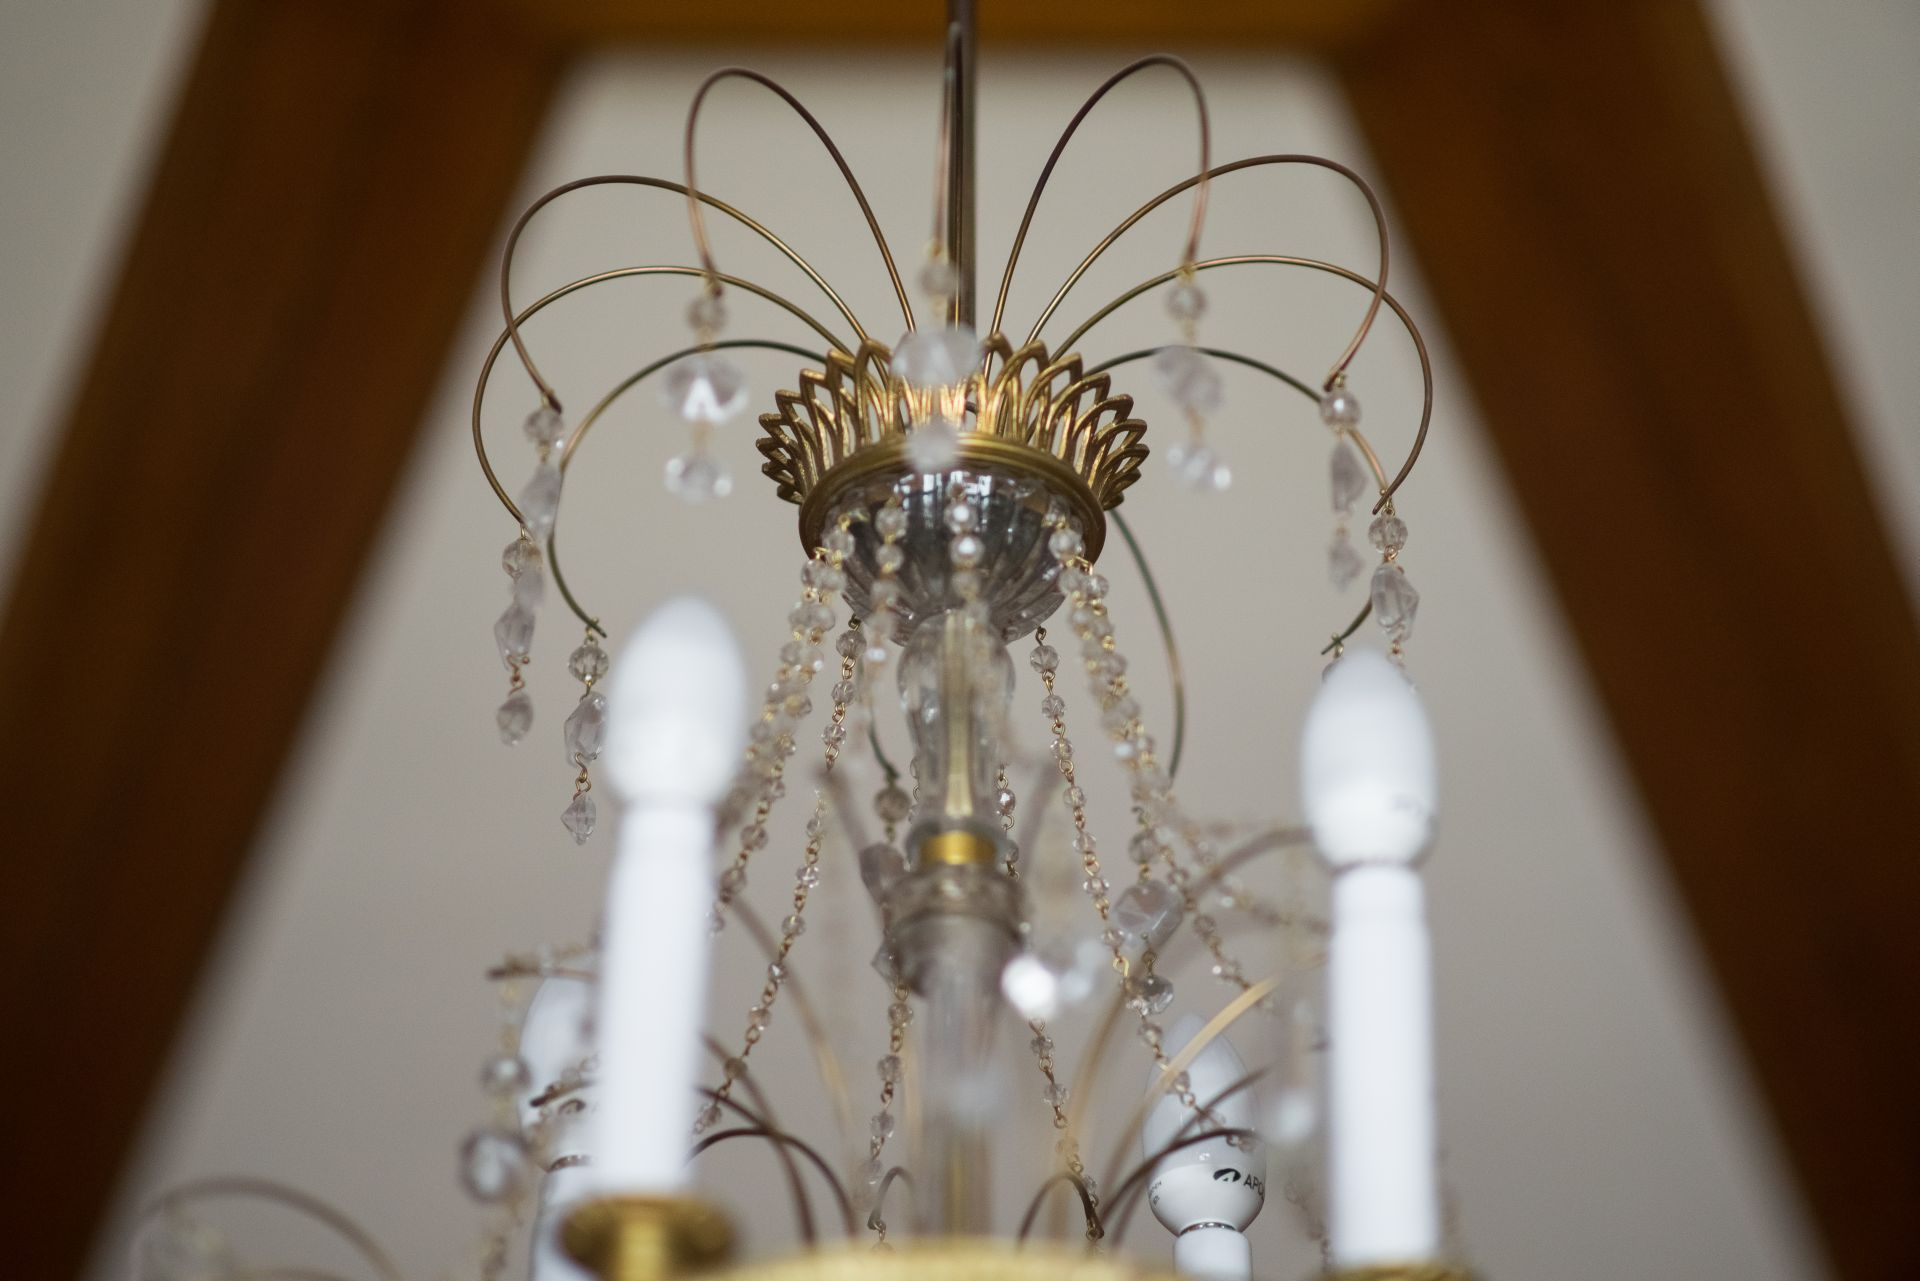 Fragment of chandelier, 1900–1929, Archdiocese of Vilnius. Photo by Povilas Jarmala, 2017